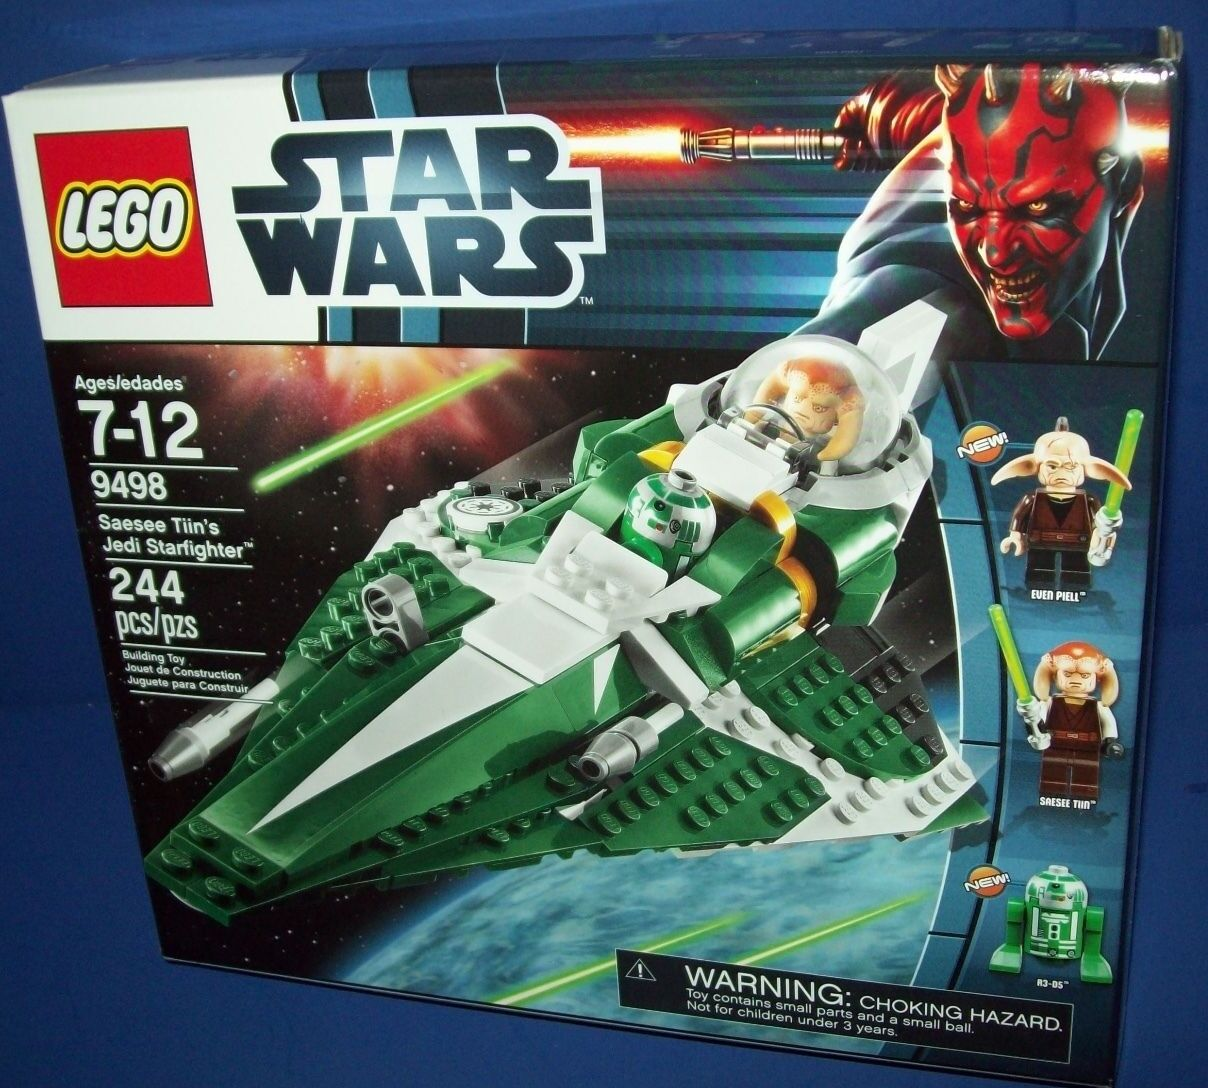 LEGO 9498 Saesee Tiin's Jedi Starfighter Star Wars Retired NISB sealed